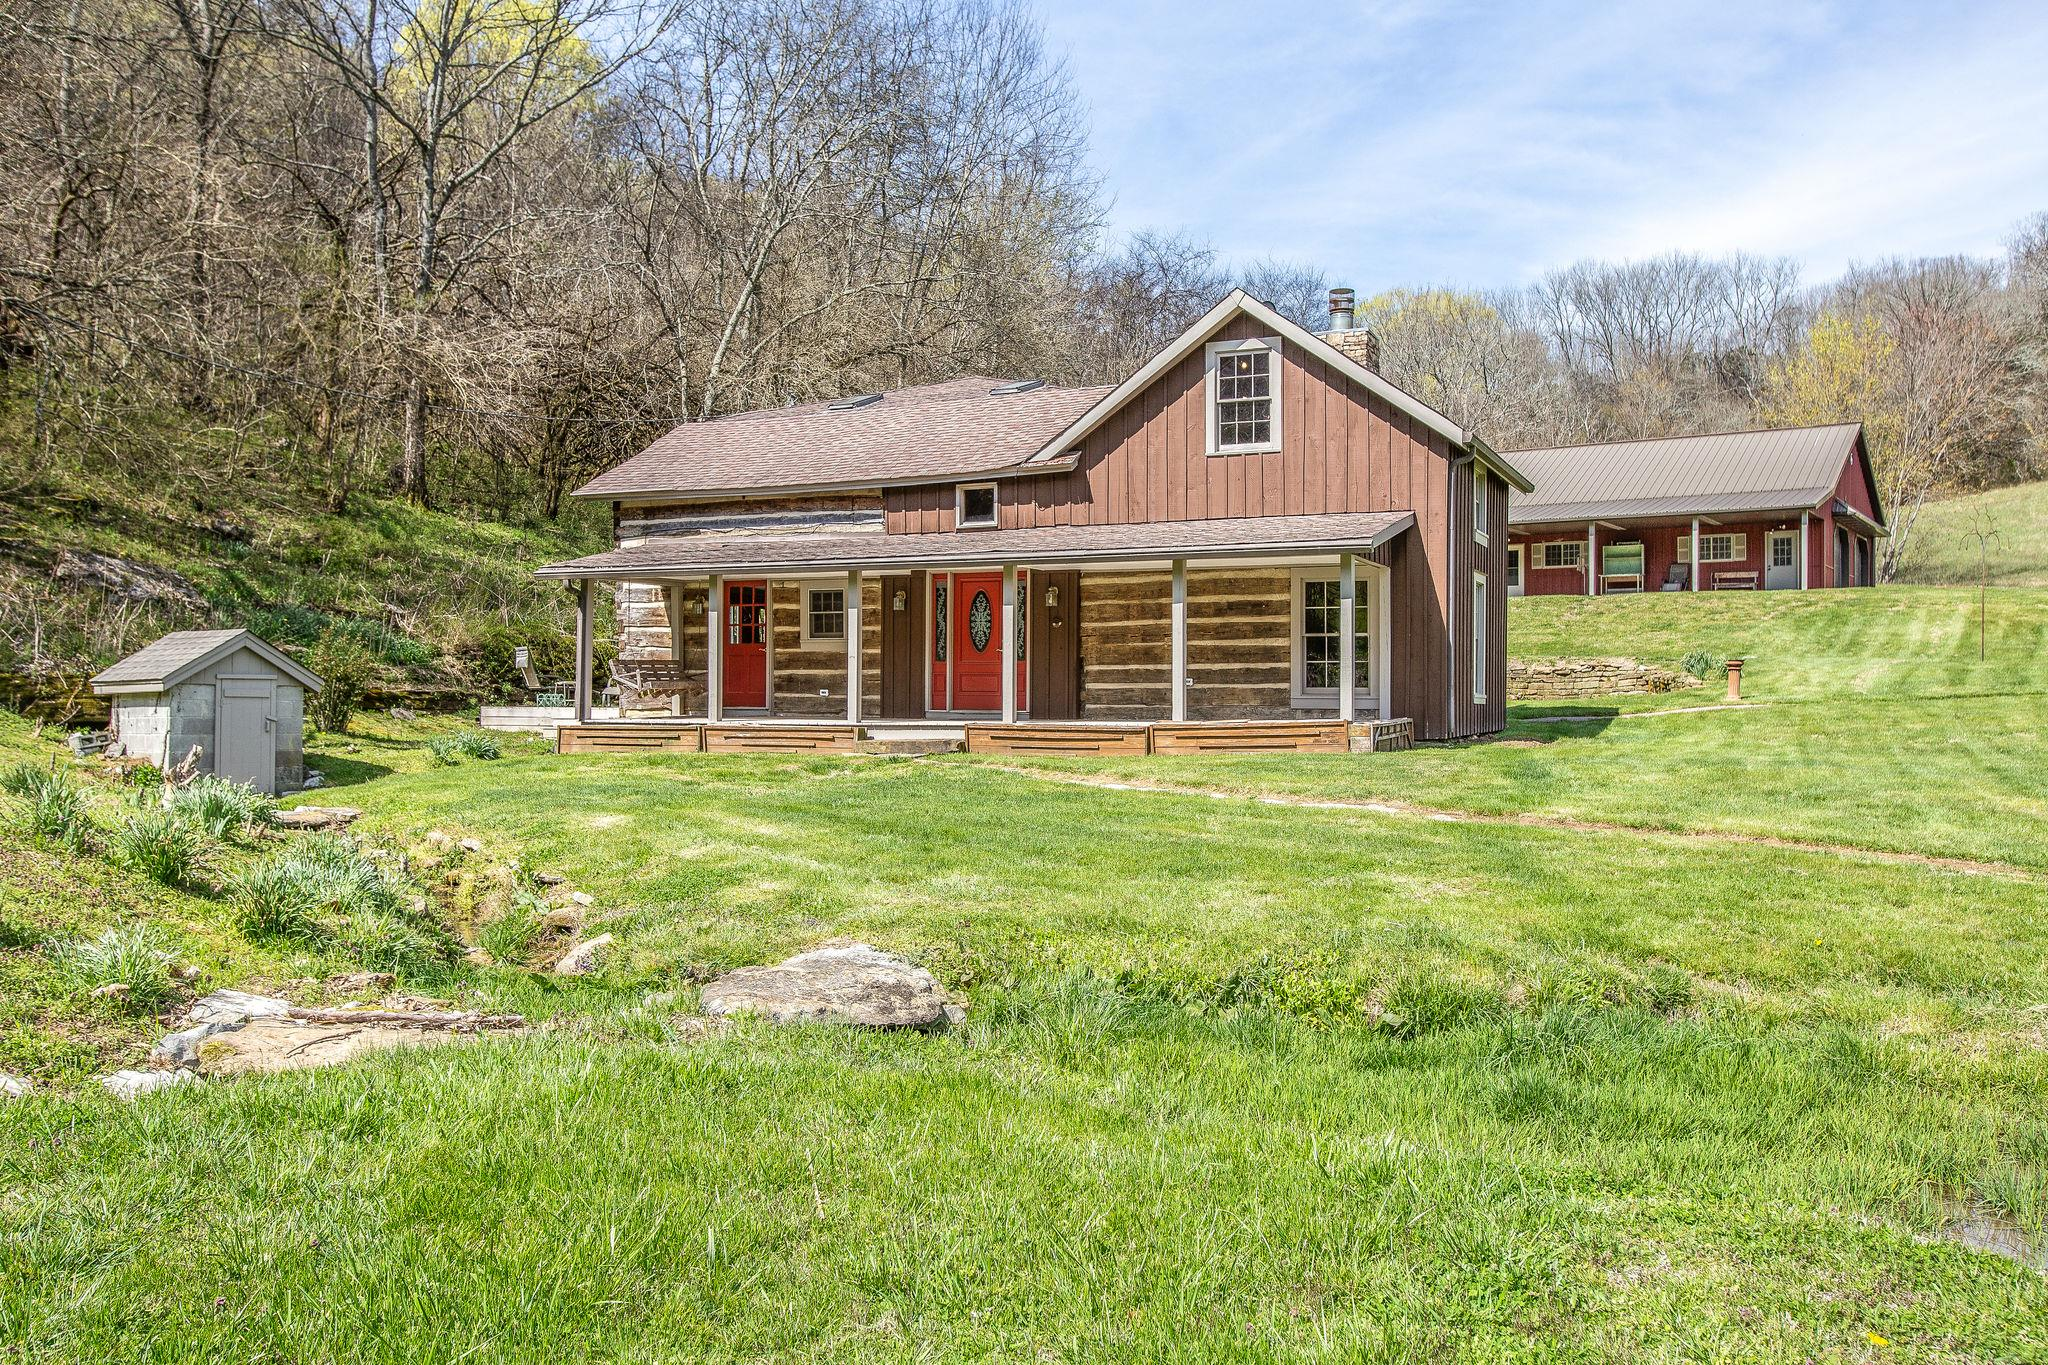 6695 Cross Keys Rd, College Grove, TN 37046 - College Grove, TN real estate listing